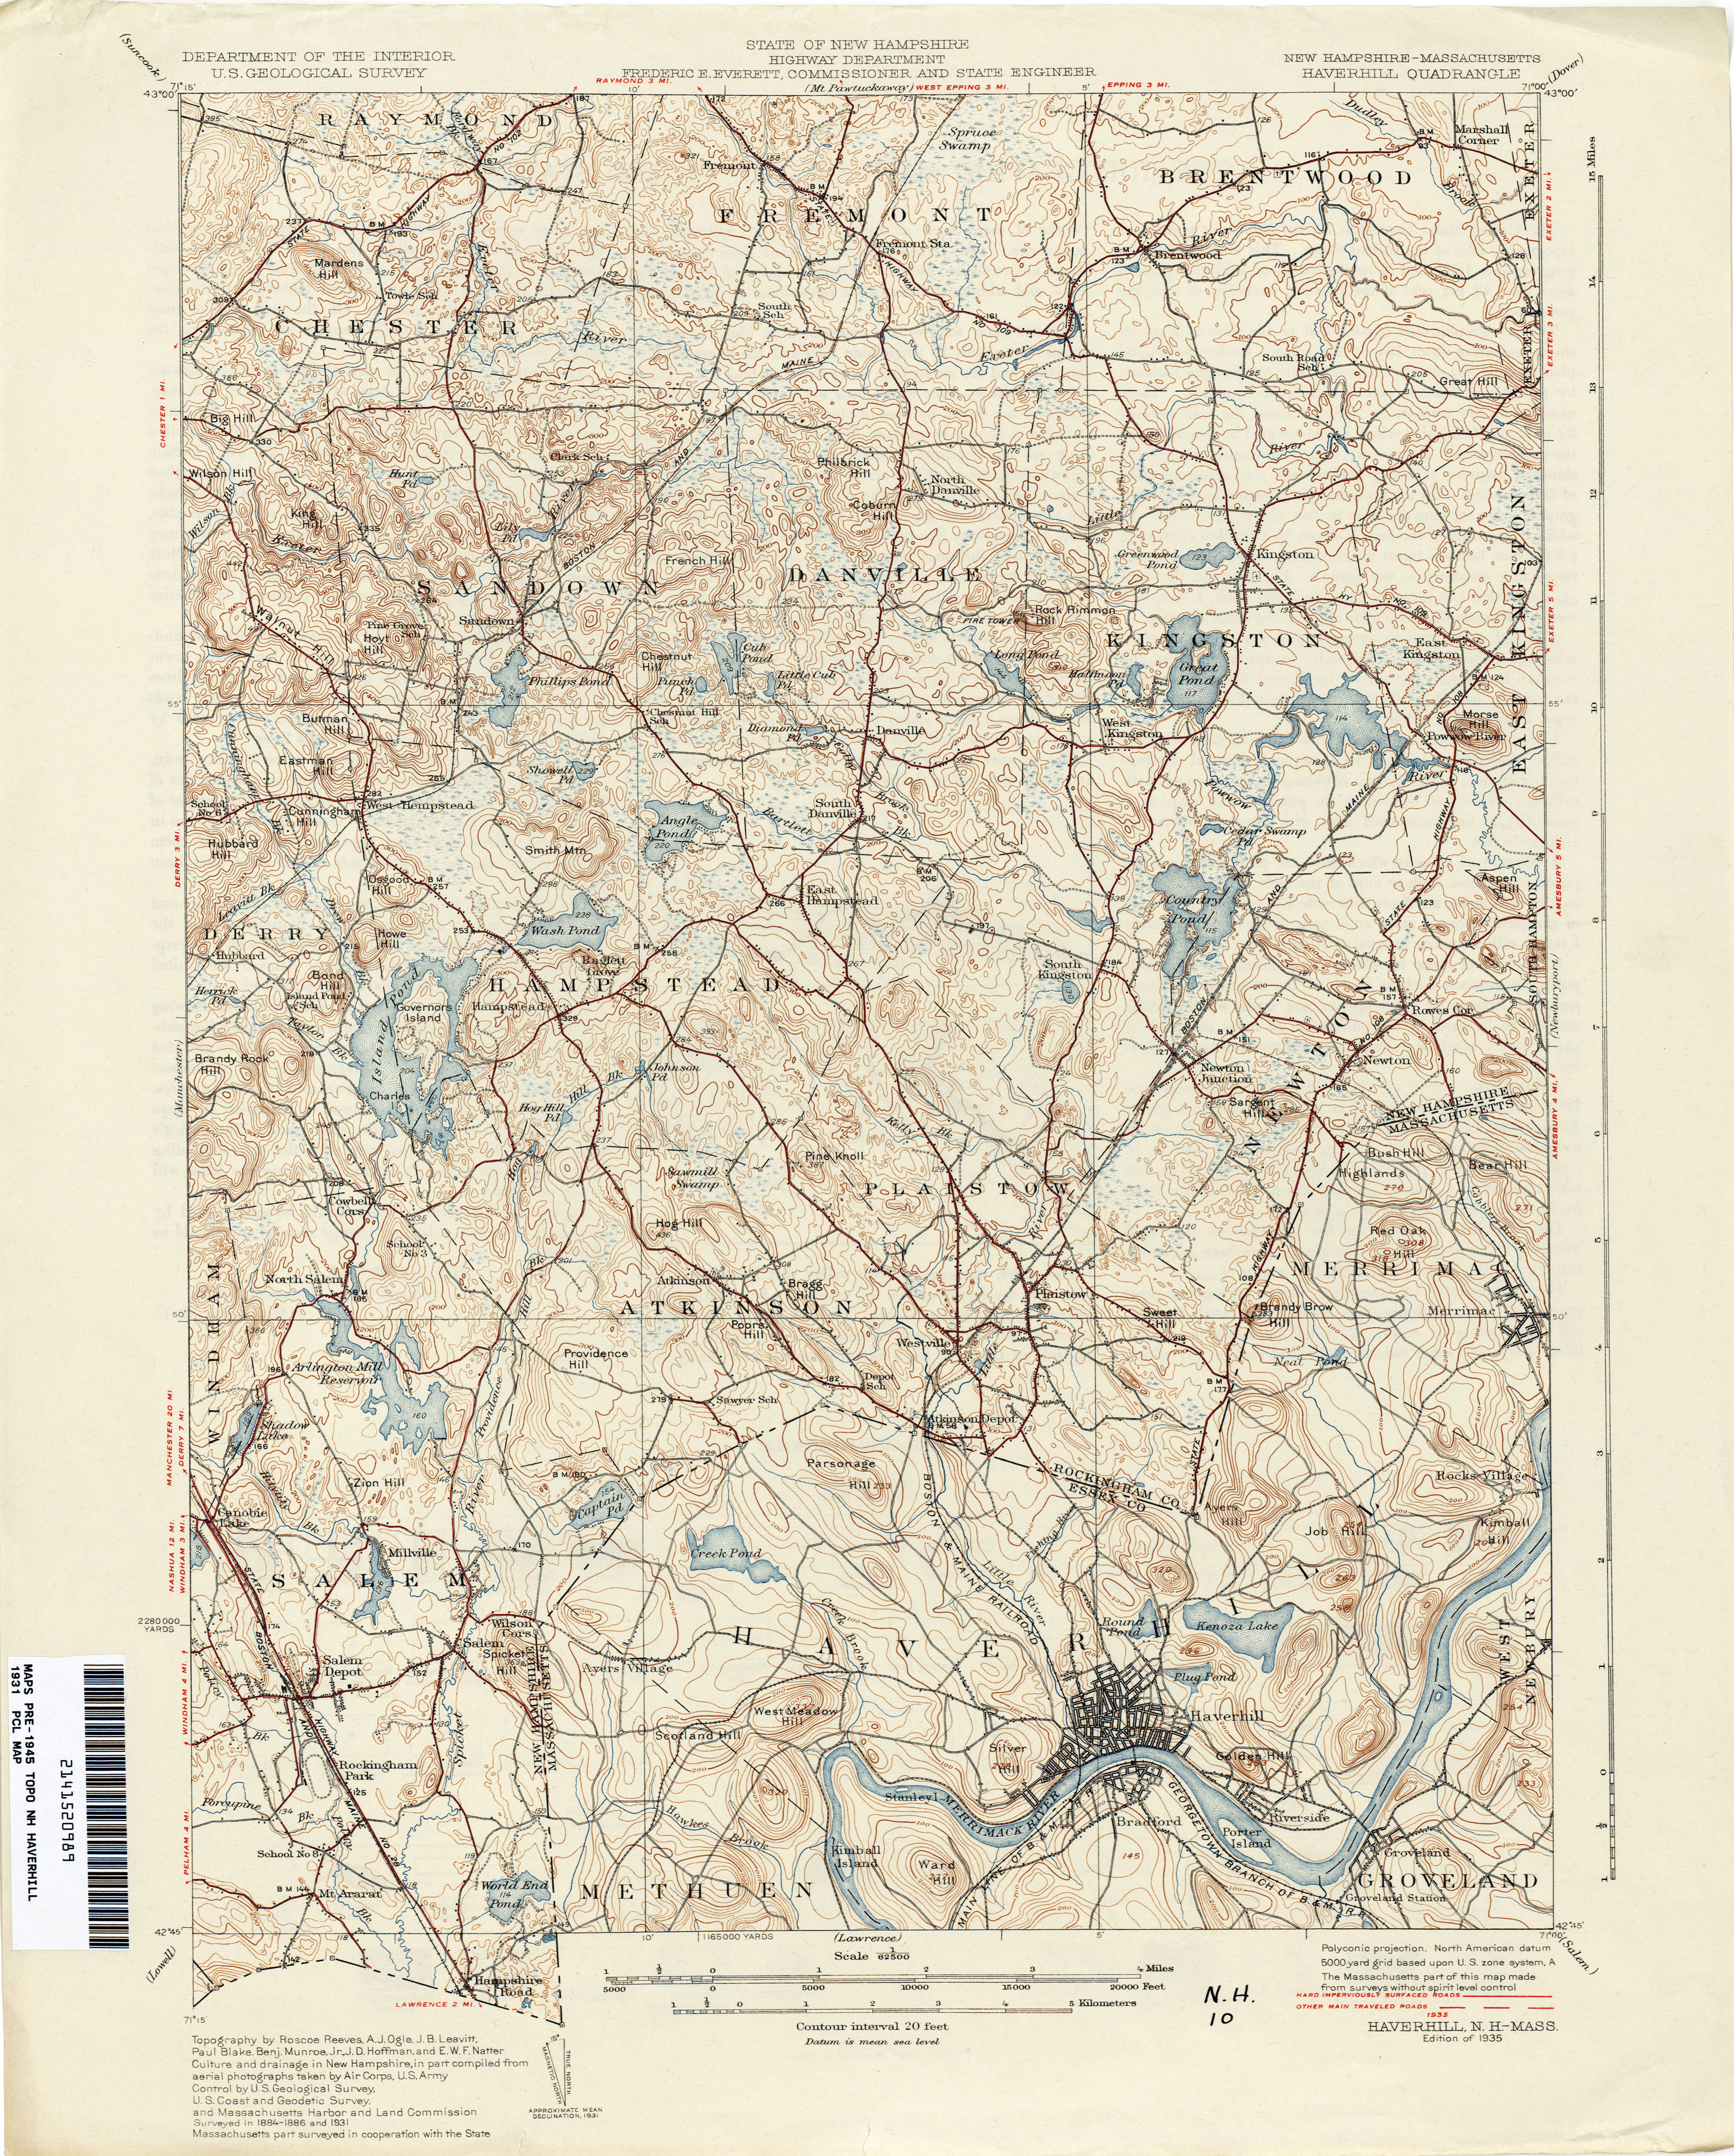 Topographic Map Massachusetts.New Hampshire Topographic Maps Perry Castaneda Map Collection Ut